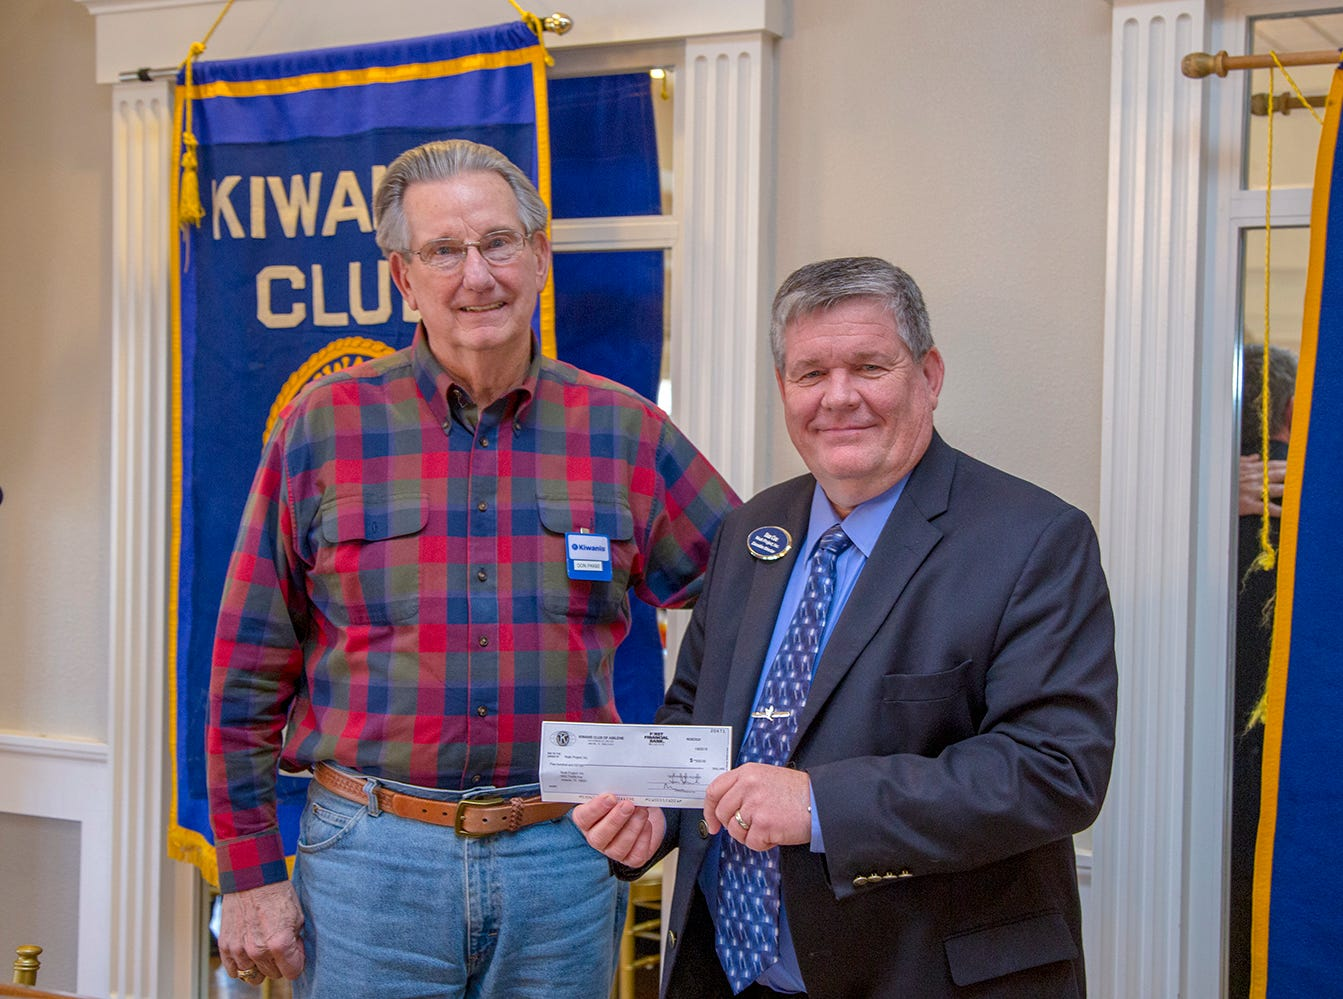 Don Paige, community service chair of the Kiwanis Club of Abilene, presents a $500 donation to Dan Cox, executive director of the Noah Project, at the club's Jan. 9 meeting.